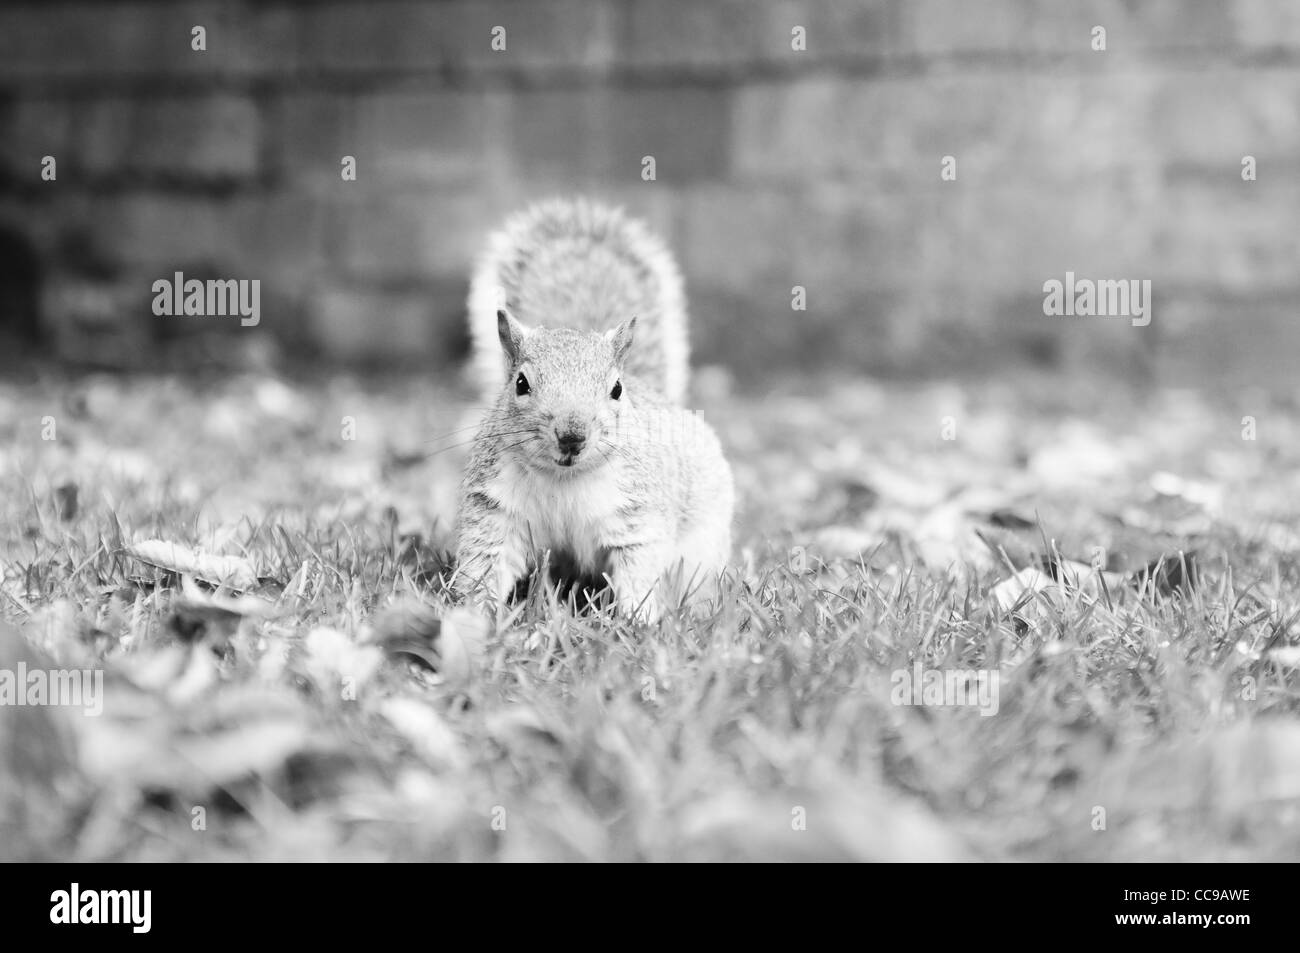 A low depth of field monotone photograph of a squirrel looking slightly off camera - Stock Image